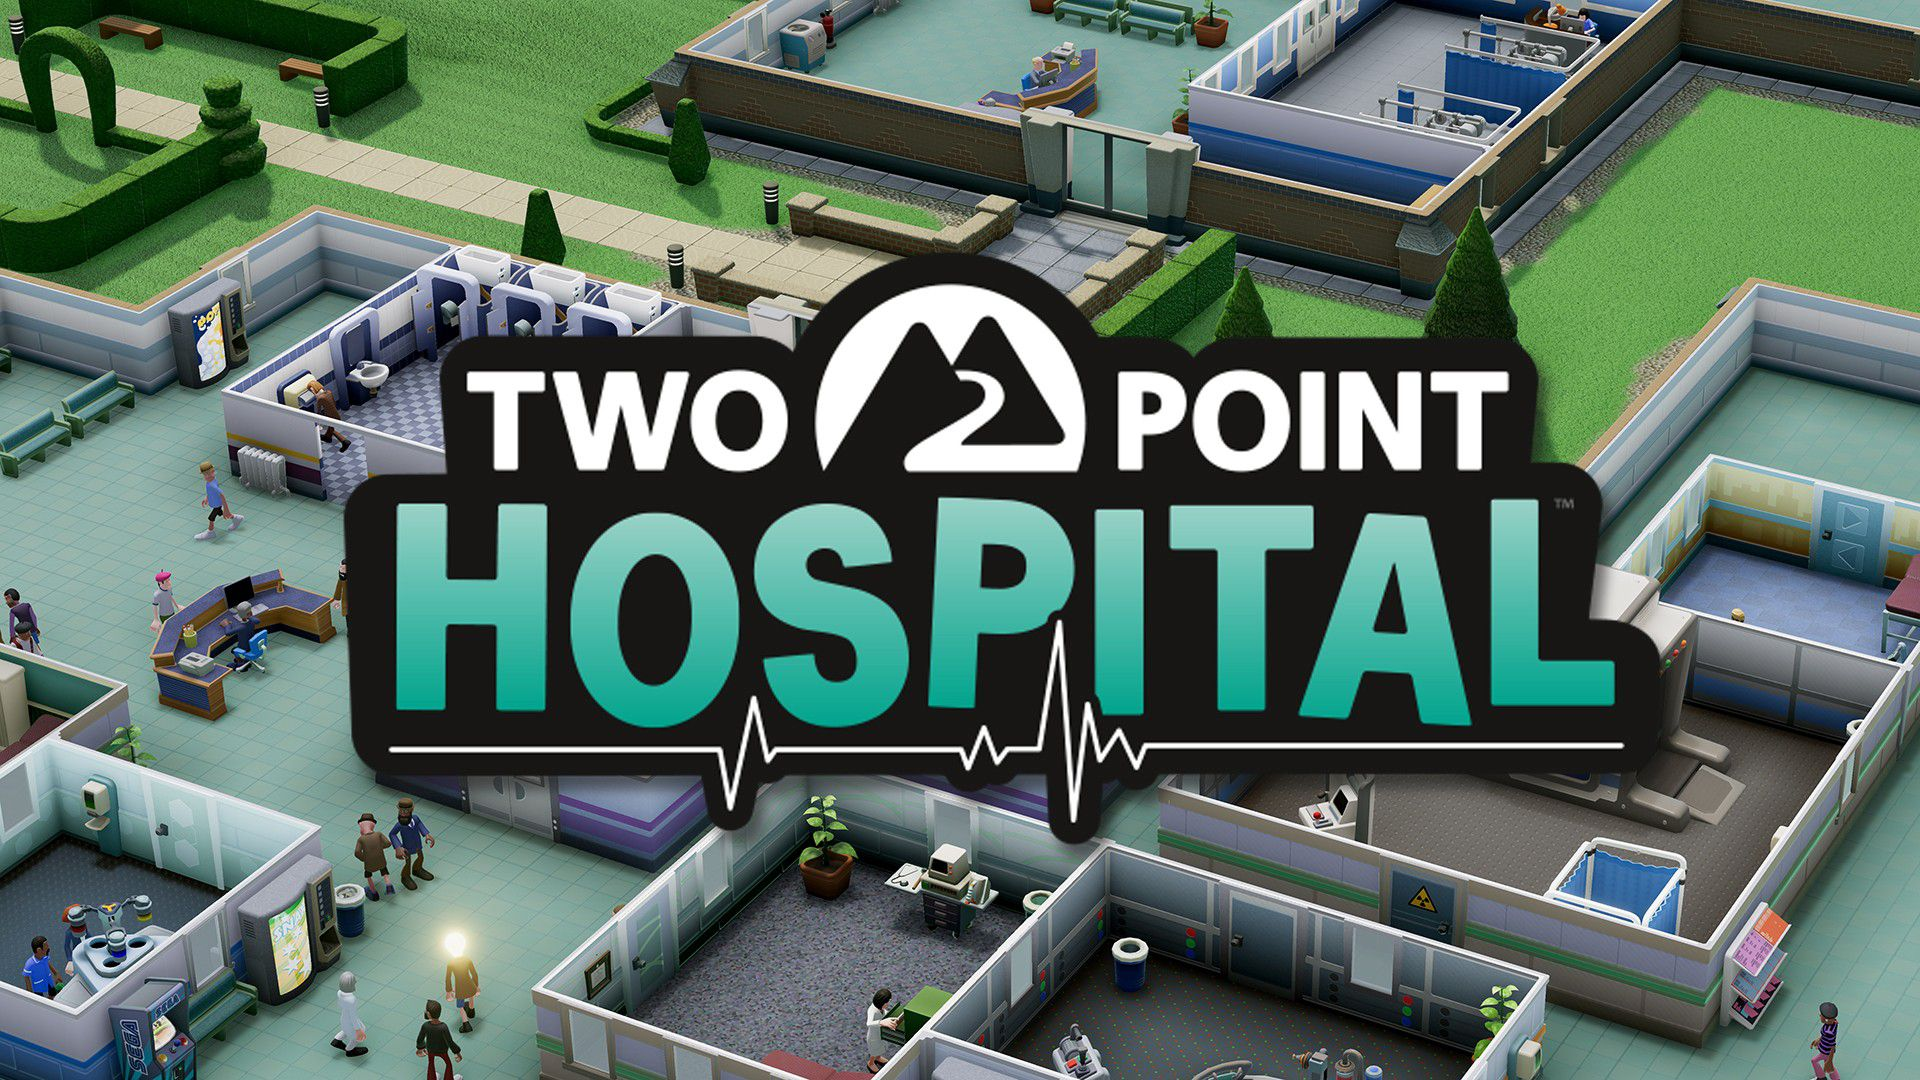 Two Point Hospital: JUMBO Edition in arrivo su console dal 5 marzo 2021!